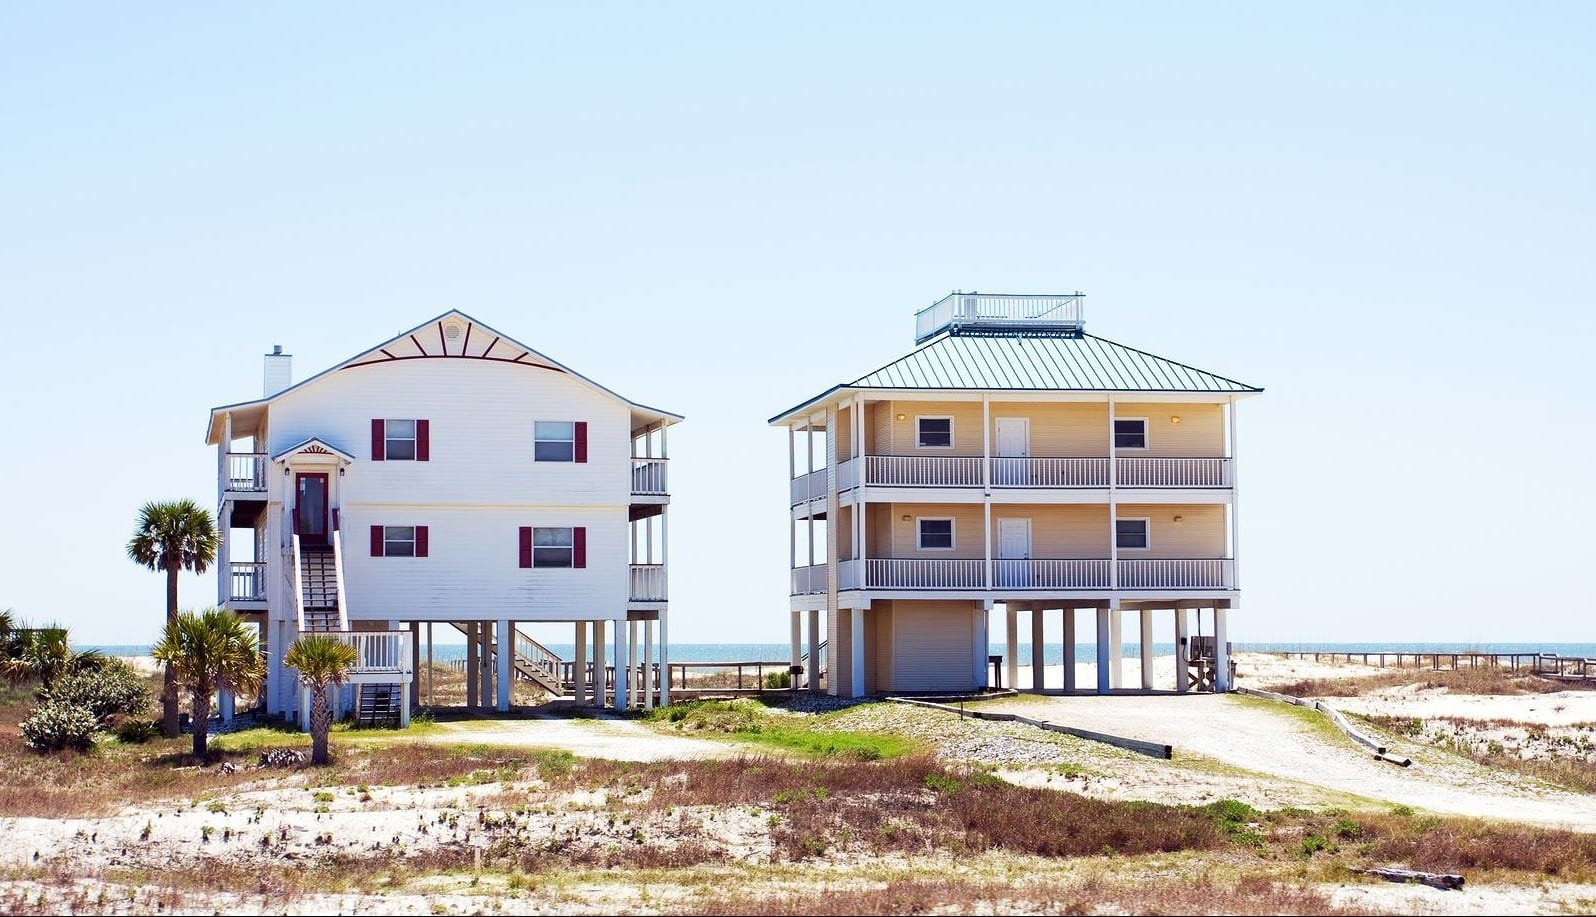 Vacation Home Rentals >> Vacation Home Rentals For Real Estate Investing The Pros